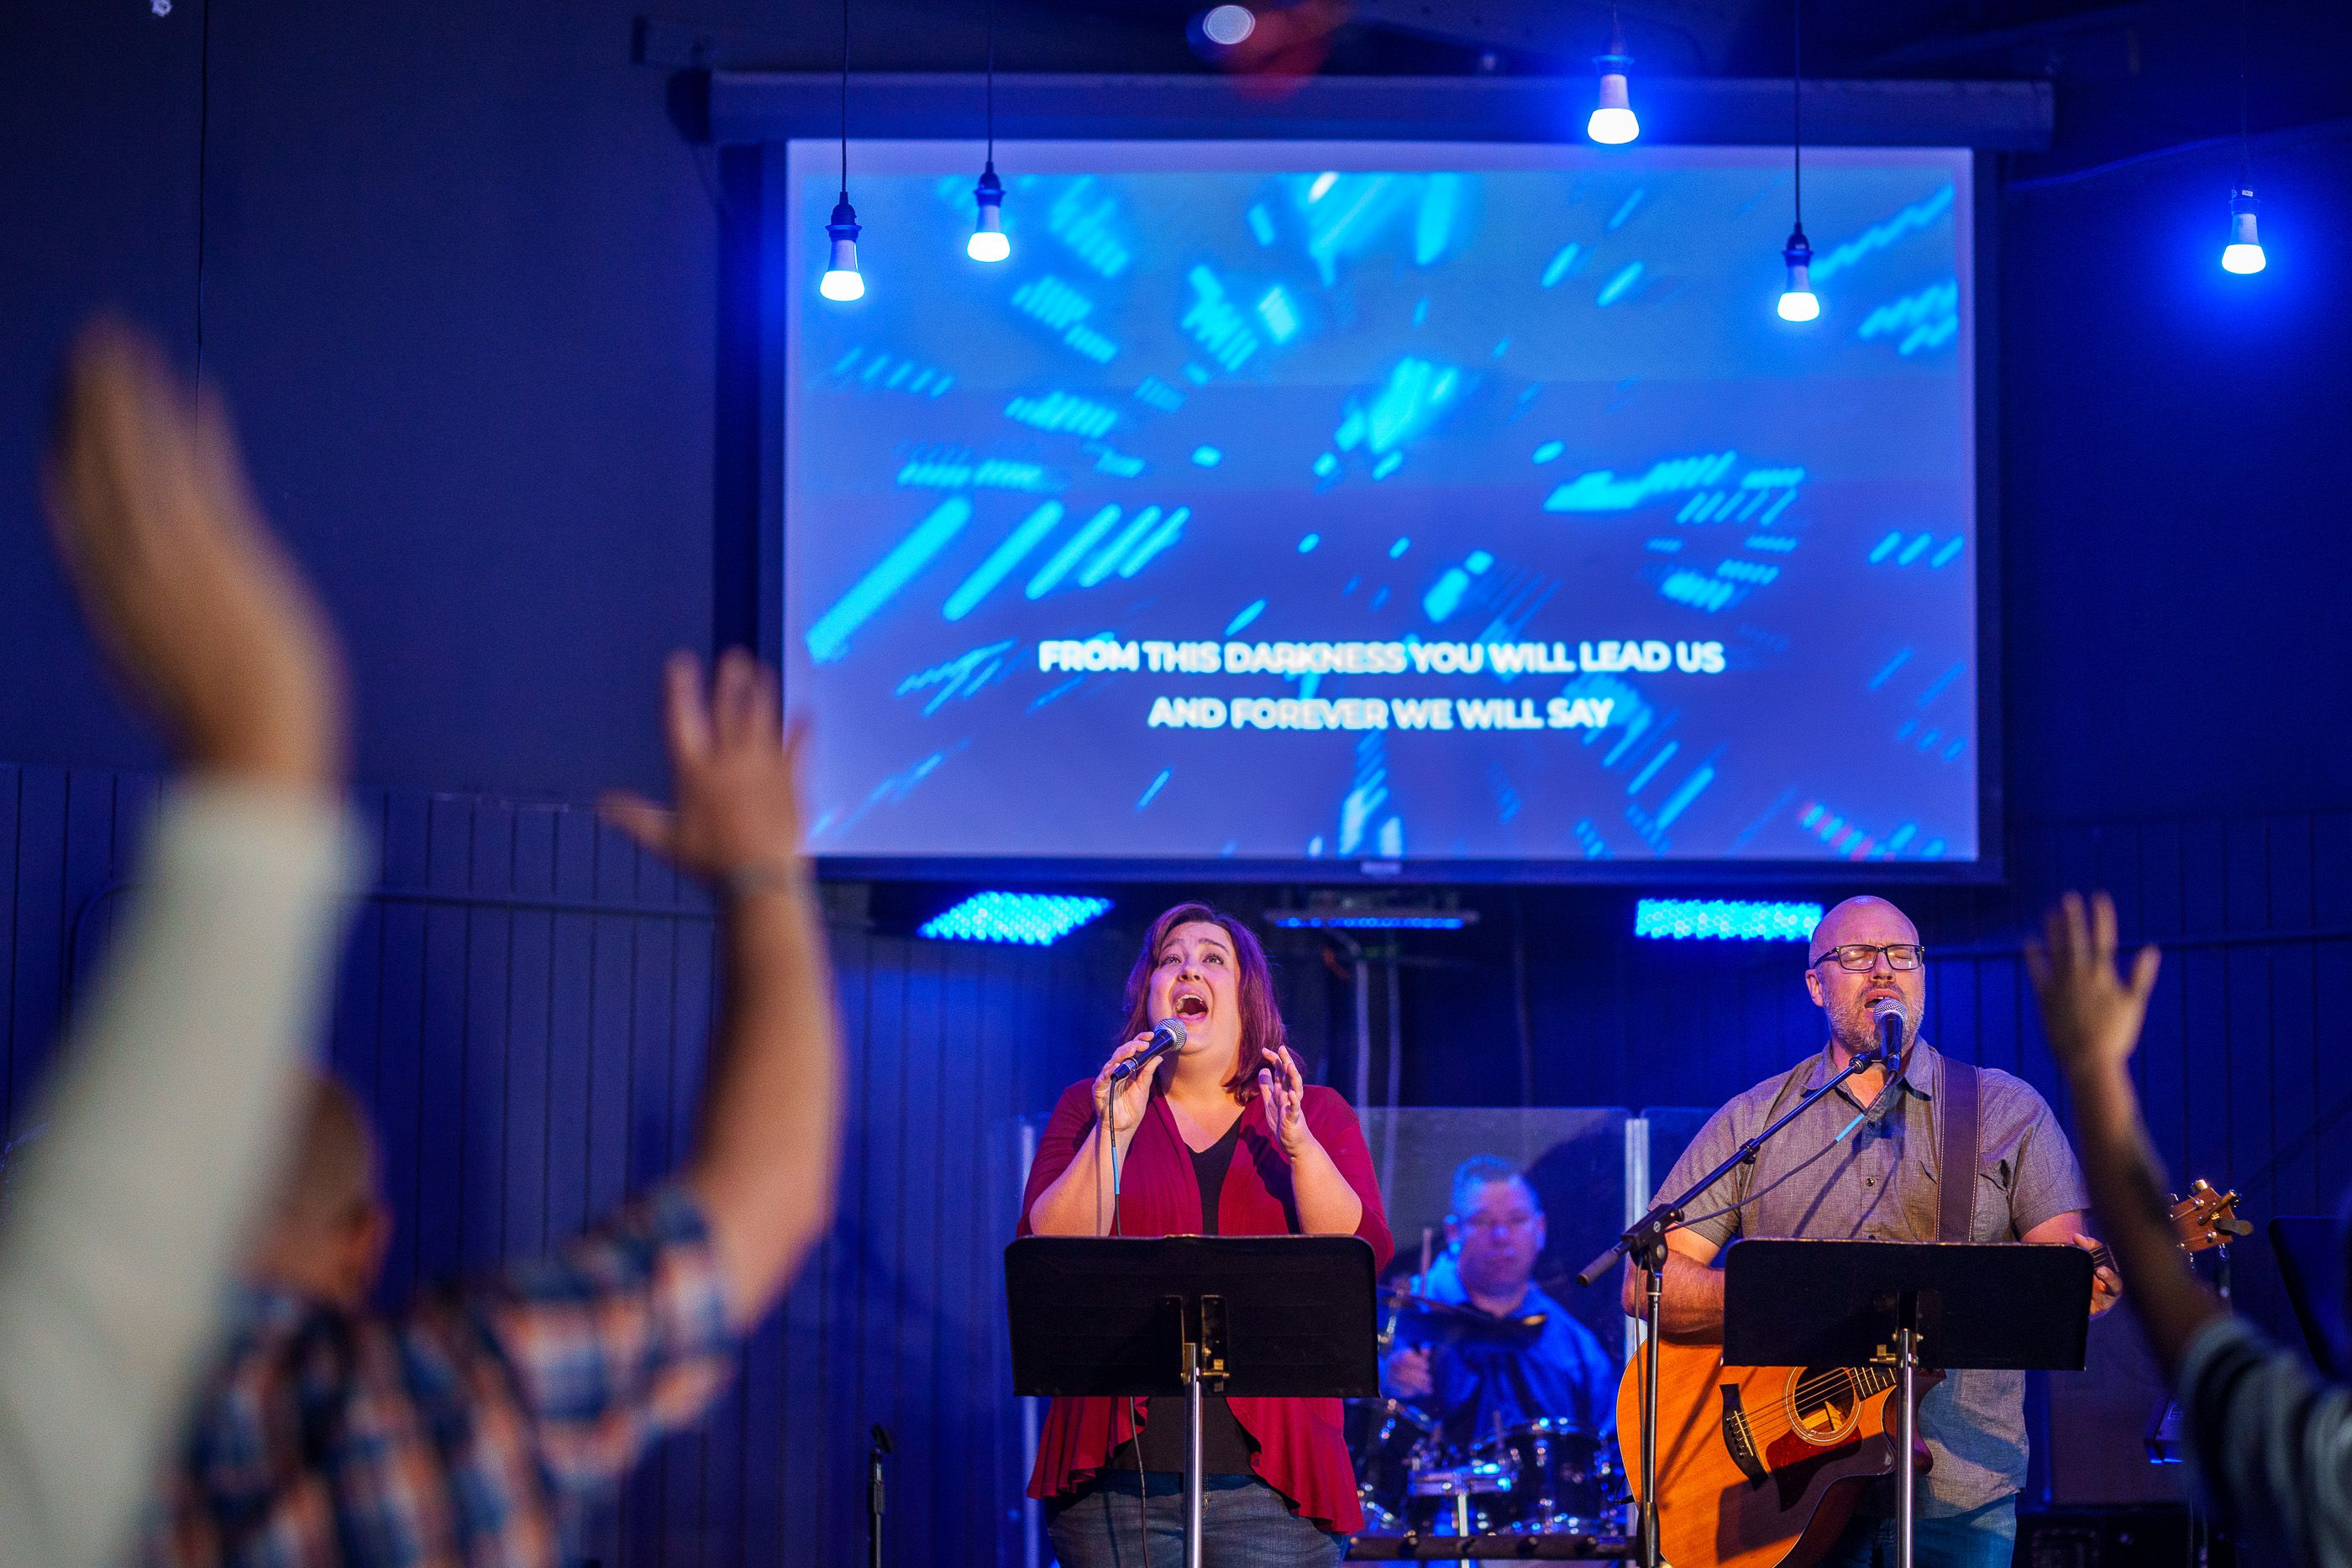 (Trent Nelson     The Salt Lake Tribune) Pastor Justin Banks, right, and his wife Heather sing during Sunday services at The Genesis Project in Provo on Sunday, May 16, 2021.